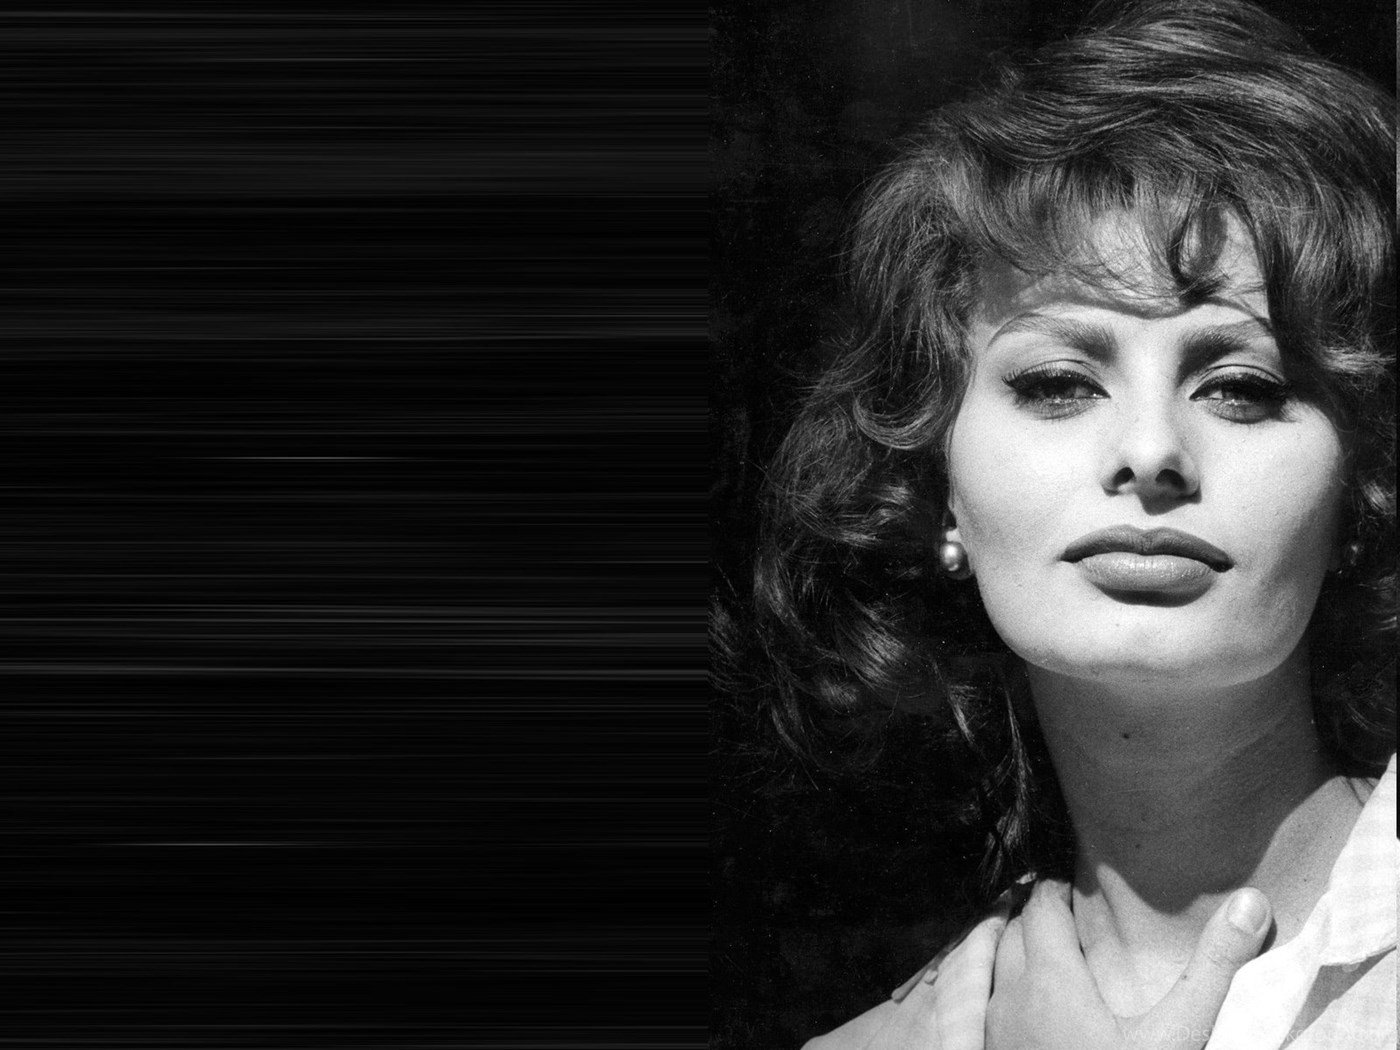 Sophia loren hd wallpapers and photos download desktop background - Wallpaper sophia loren ...